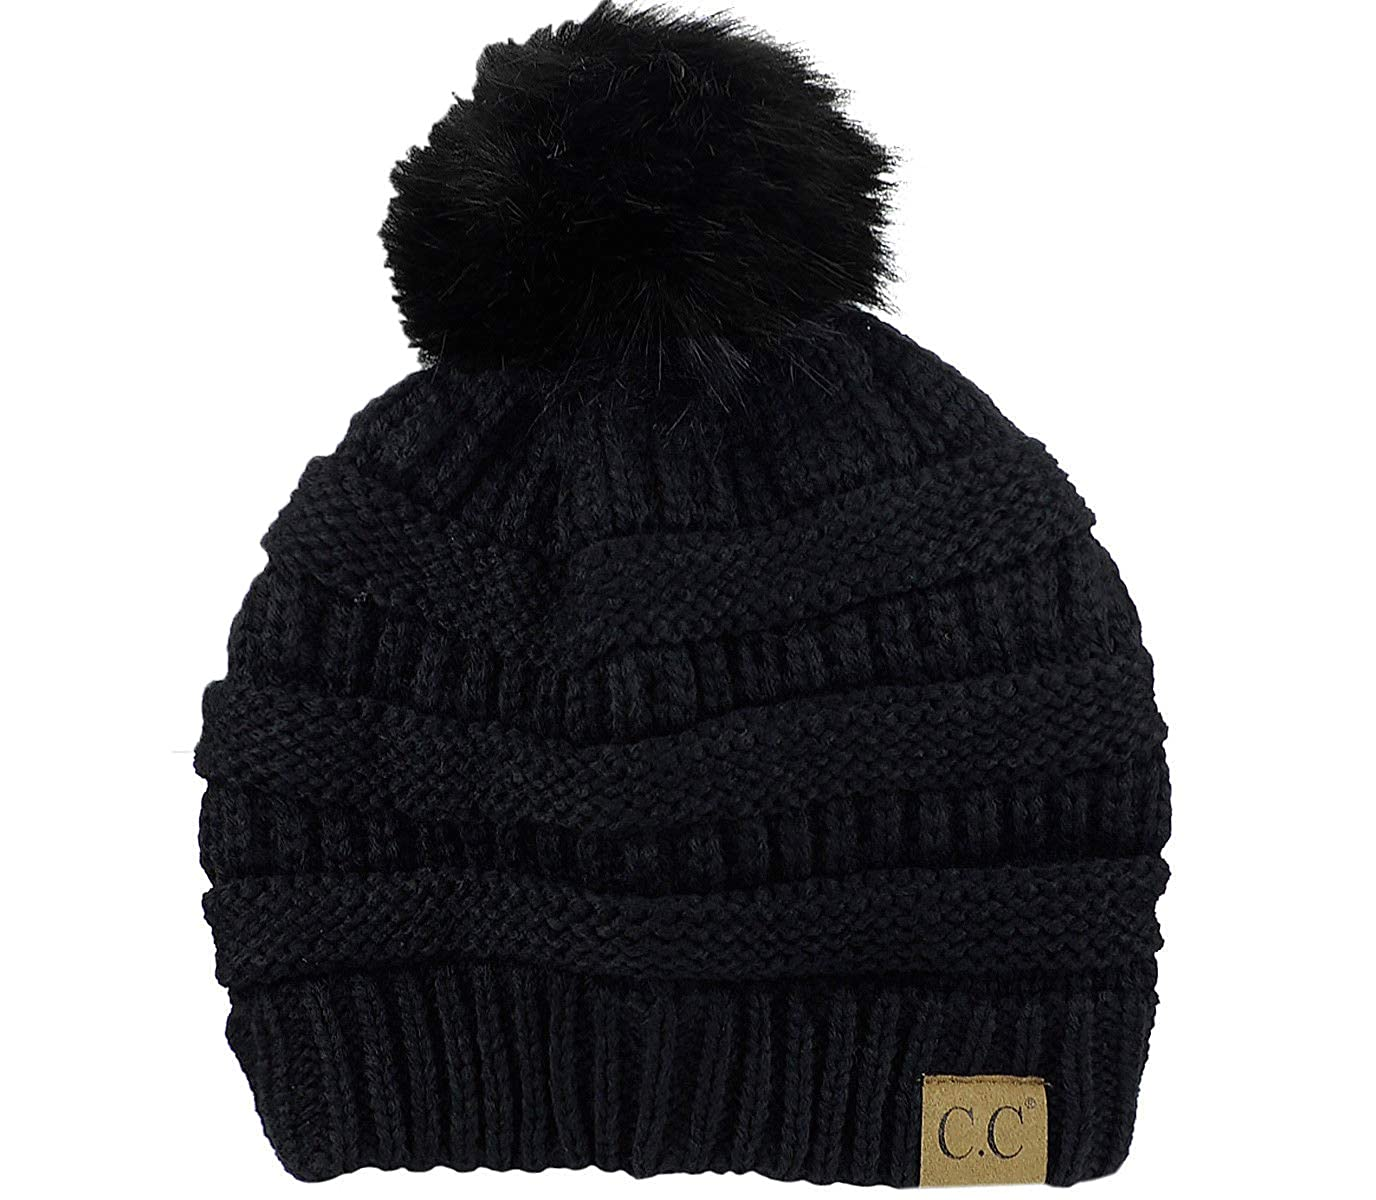 36ff0371e Women's Slouchy Beanie Cable Knit Faux Rabbit Fur Pom Pom Beanie ...